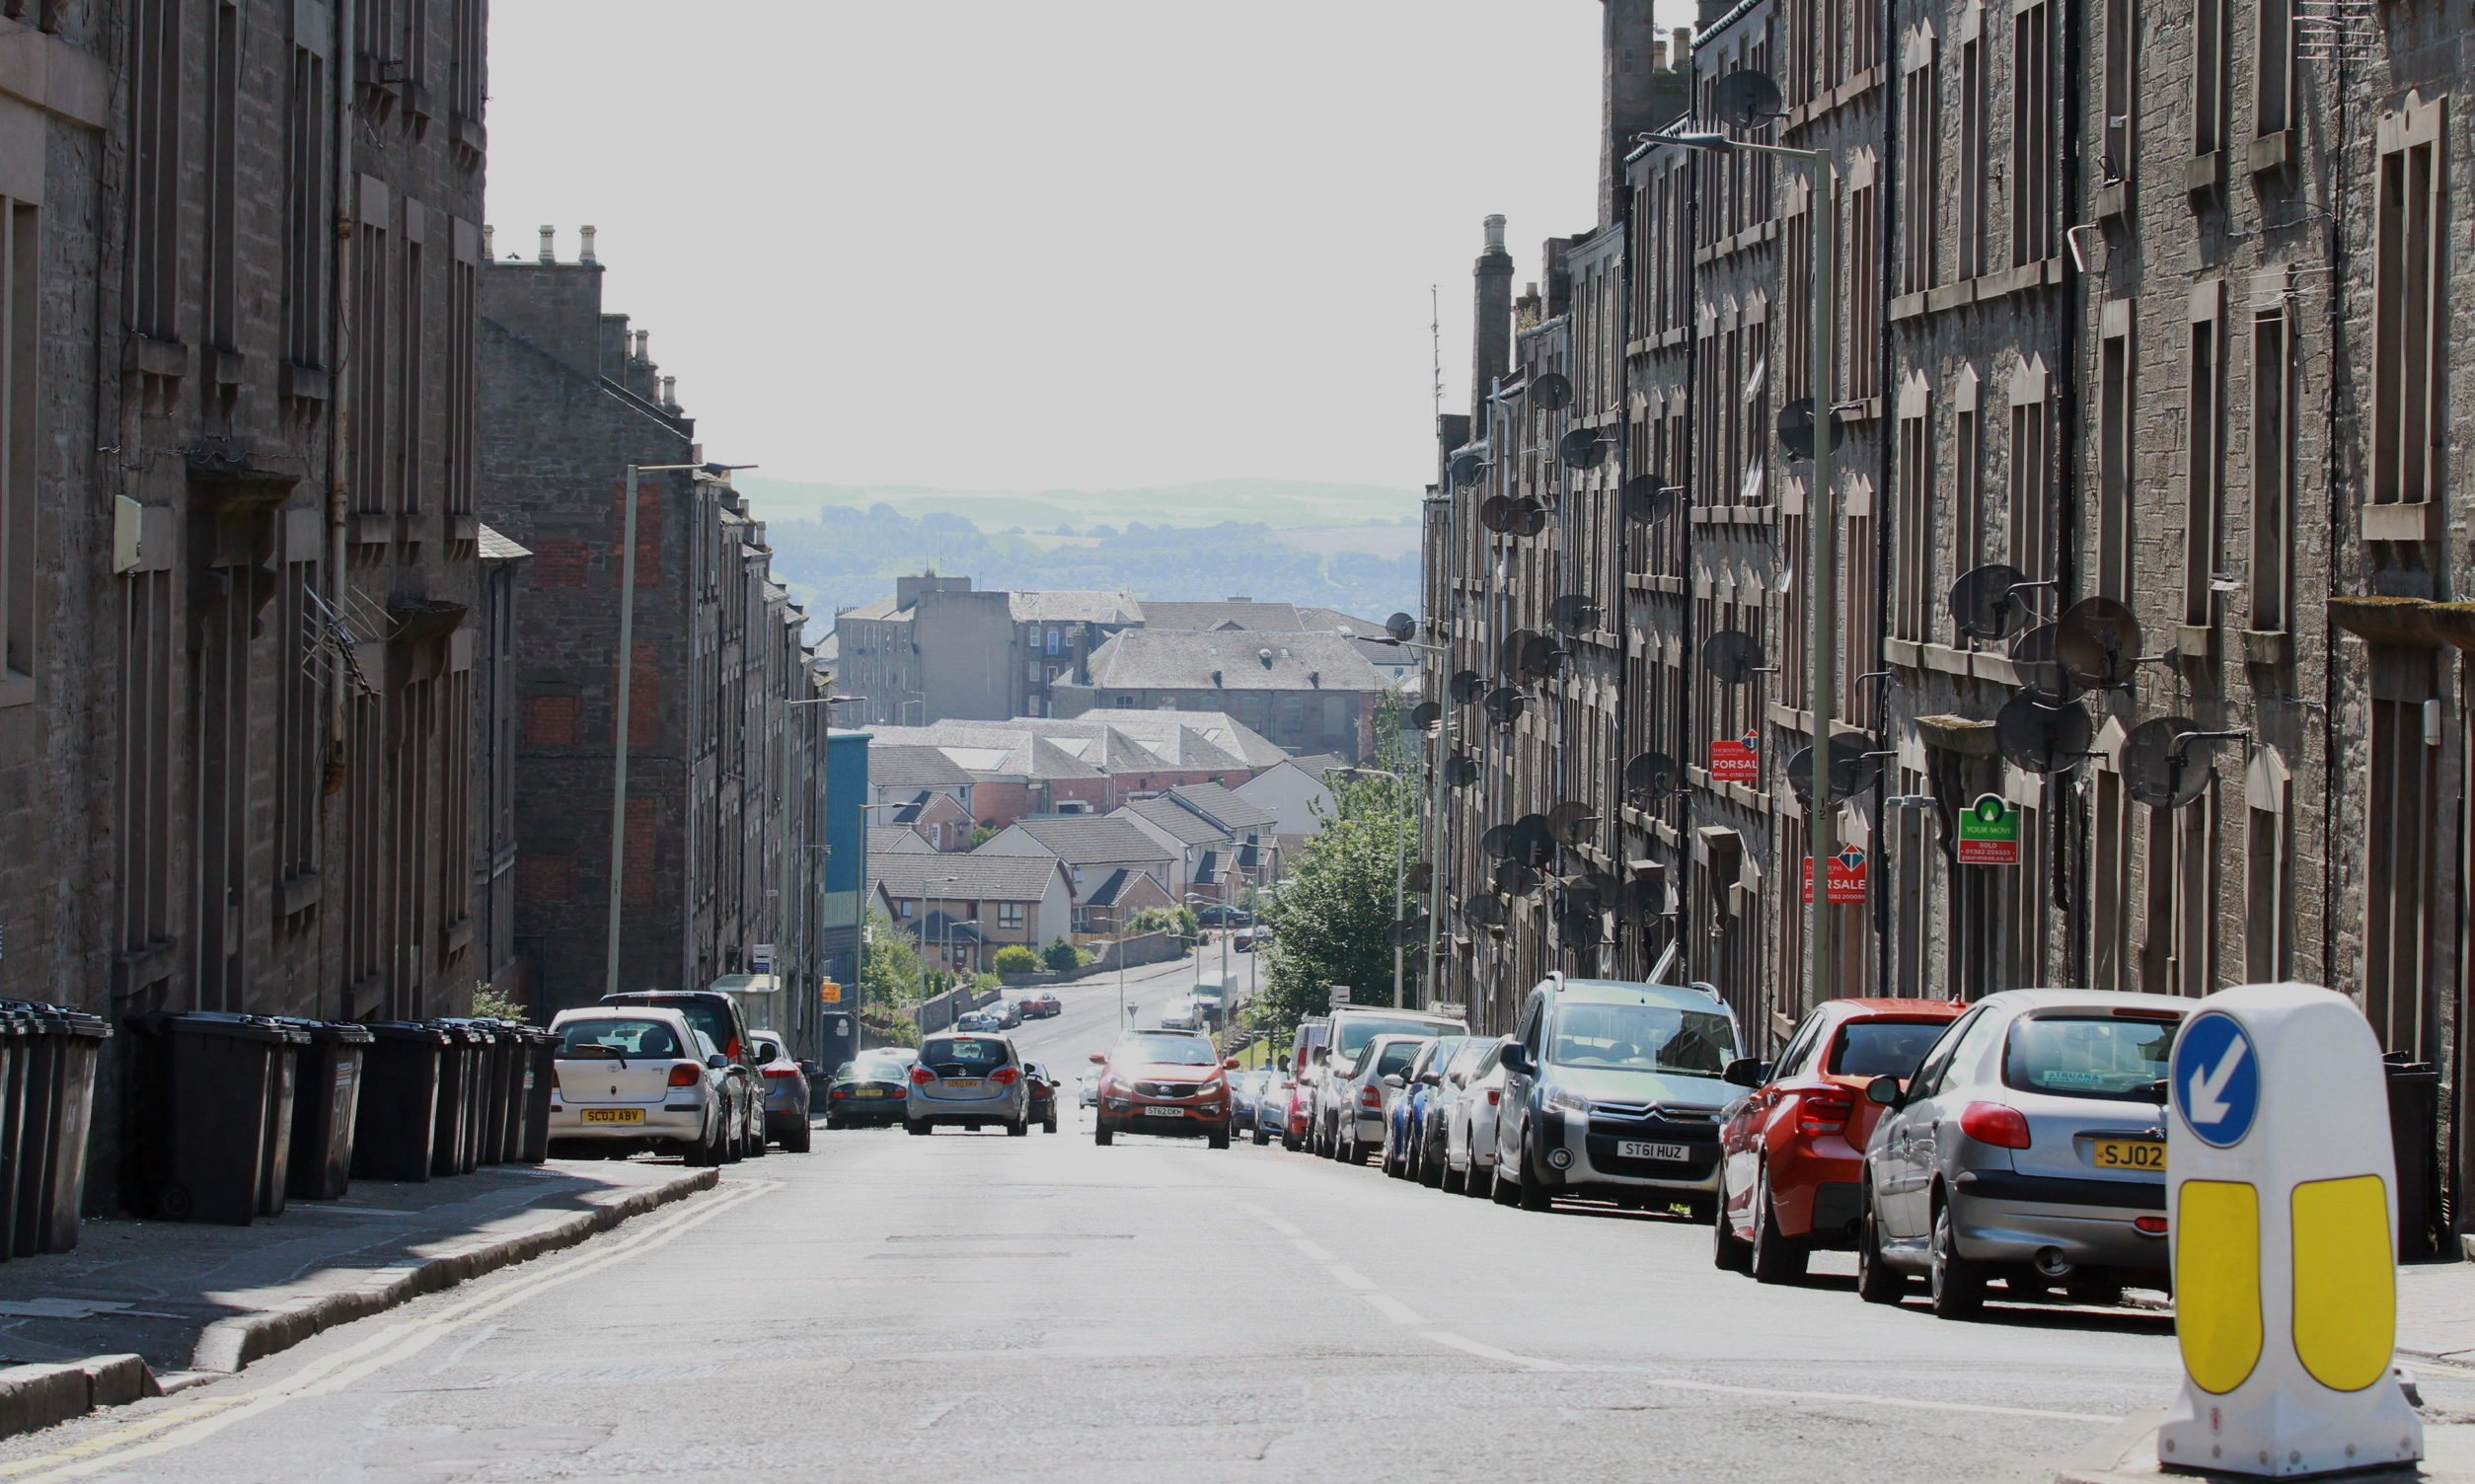 It's alleged the offences took place in Provost Road, Dundee. (Image courtesy of Google Maps).